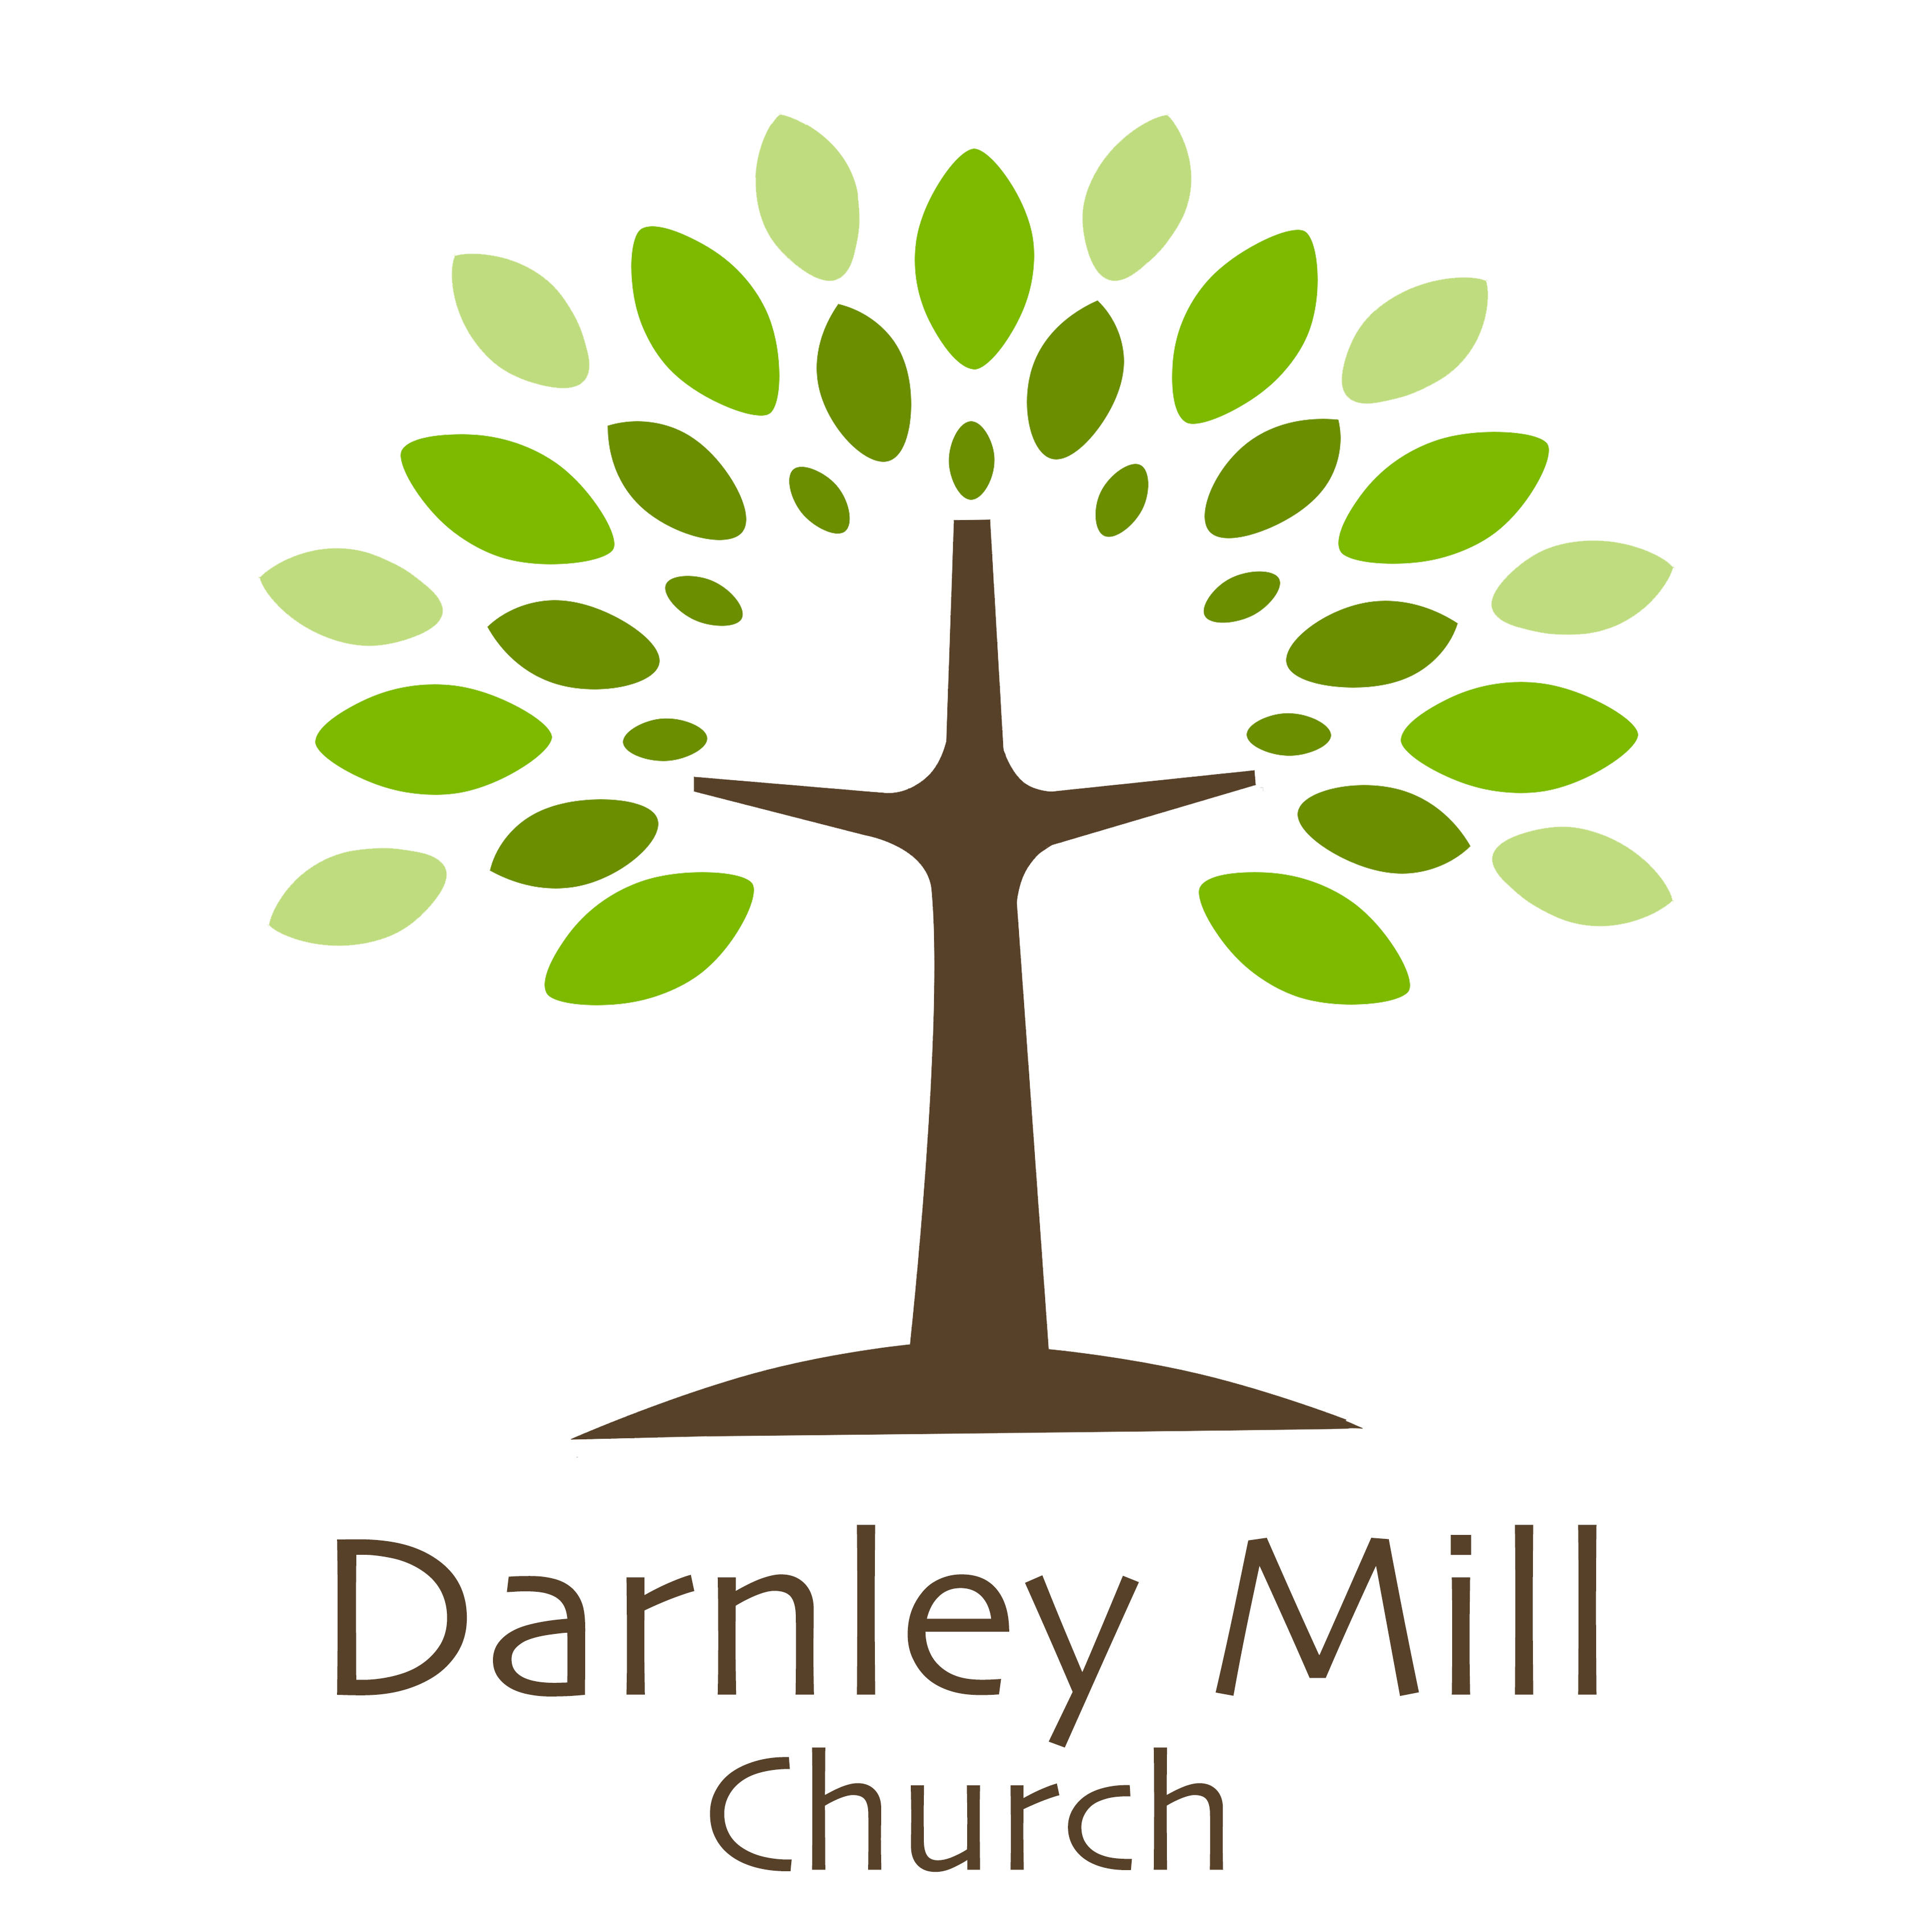 Darnley Mill Church